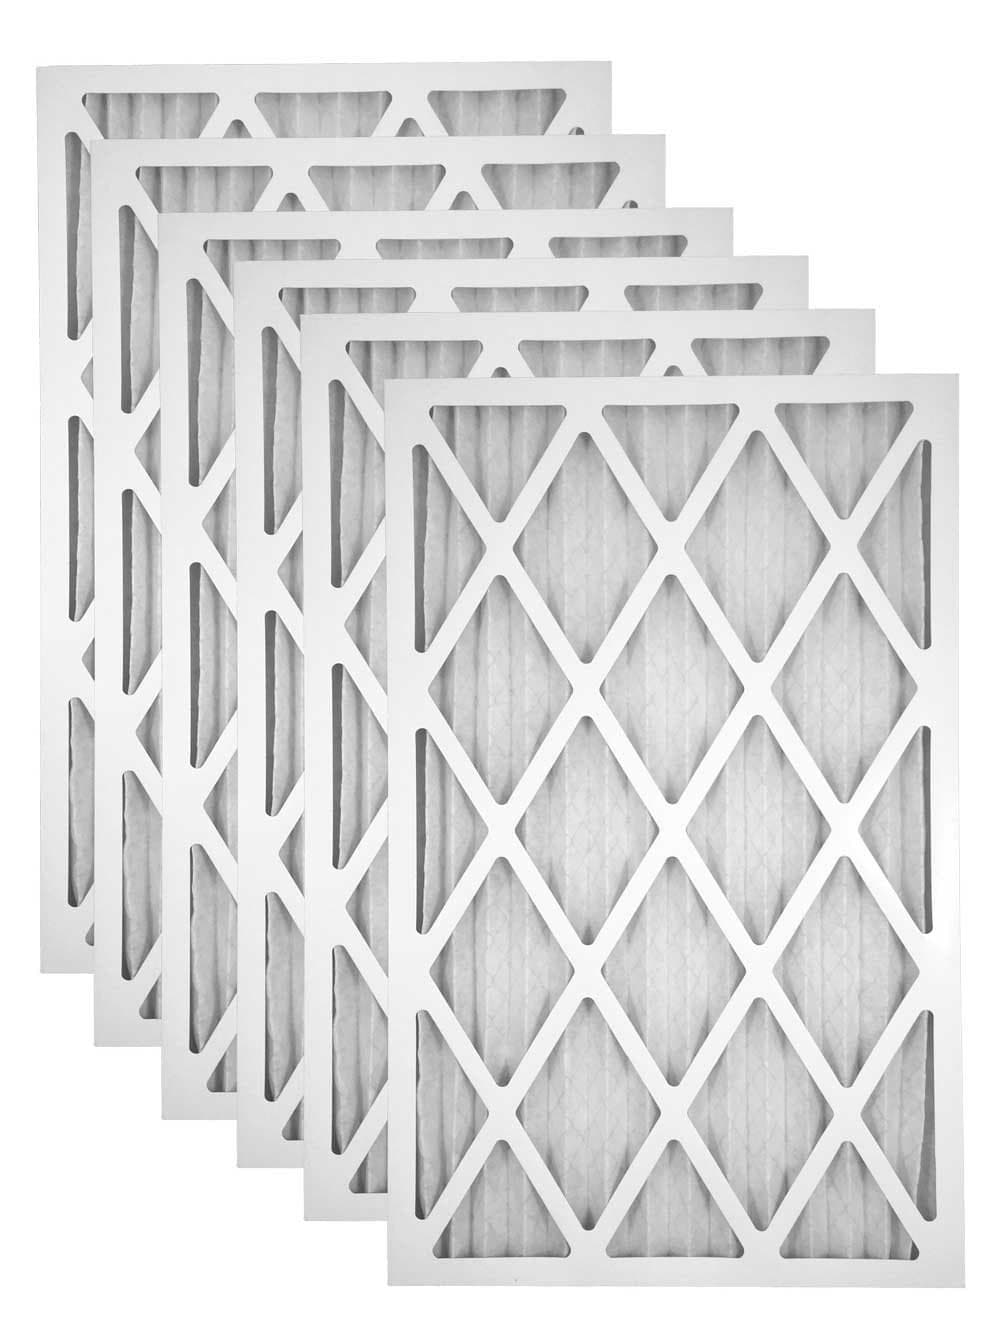 18x22x1 Merv 8 Pleated AC Furnace Filter - Case of 6 by Atomic Filters